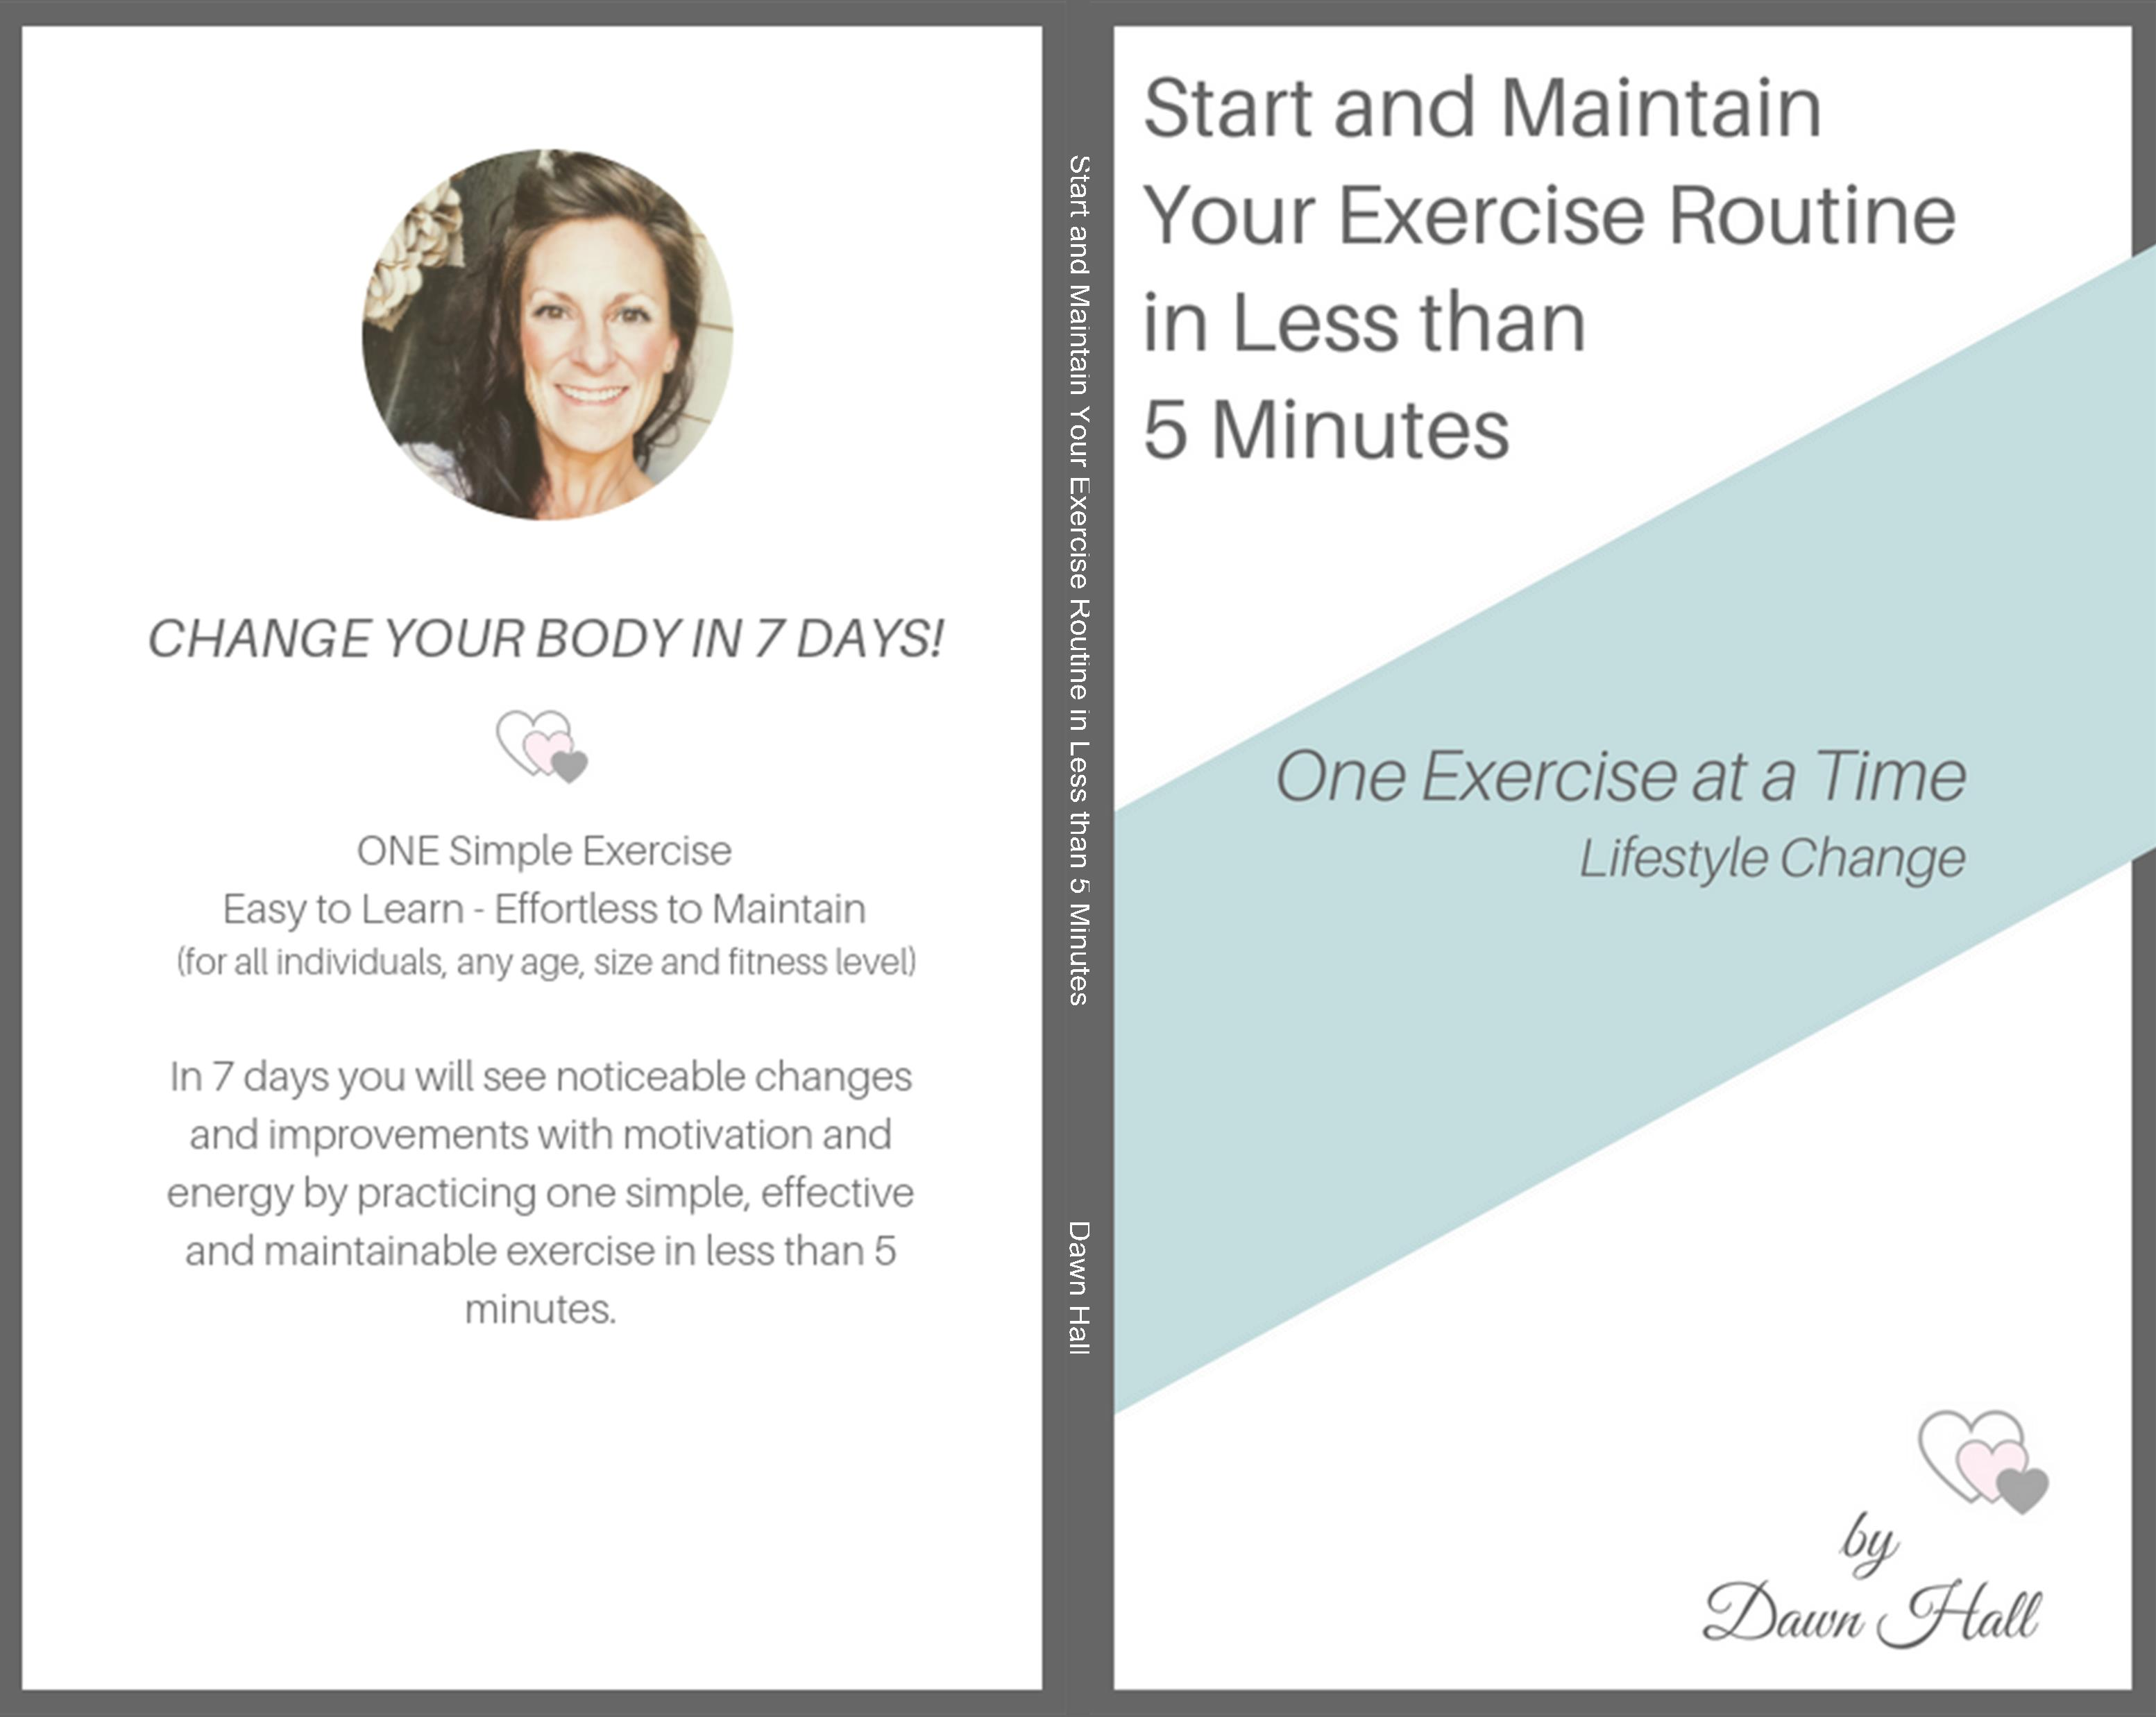 Start and Maintain Your Exercise Routine in Less than 5 Minutes cover image